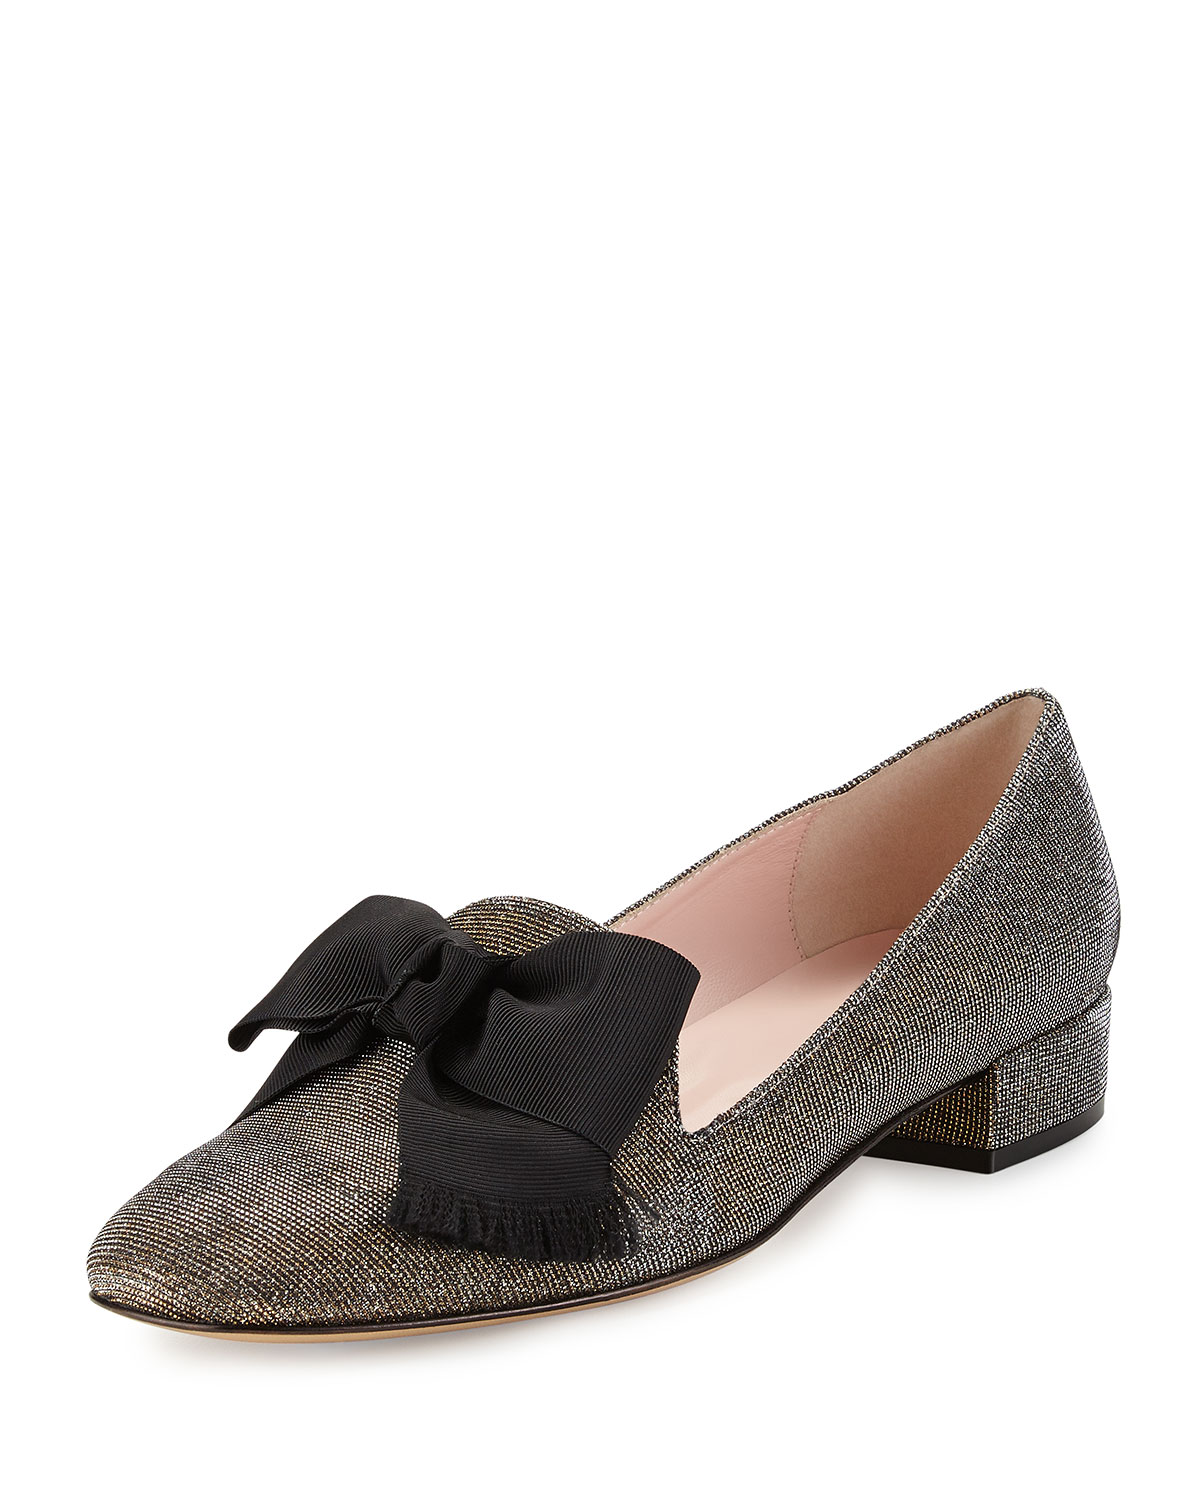 d23c9cabf85 kate spade new york gino glitter bow loafer pump